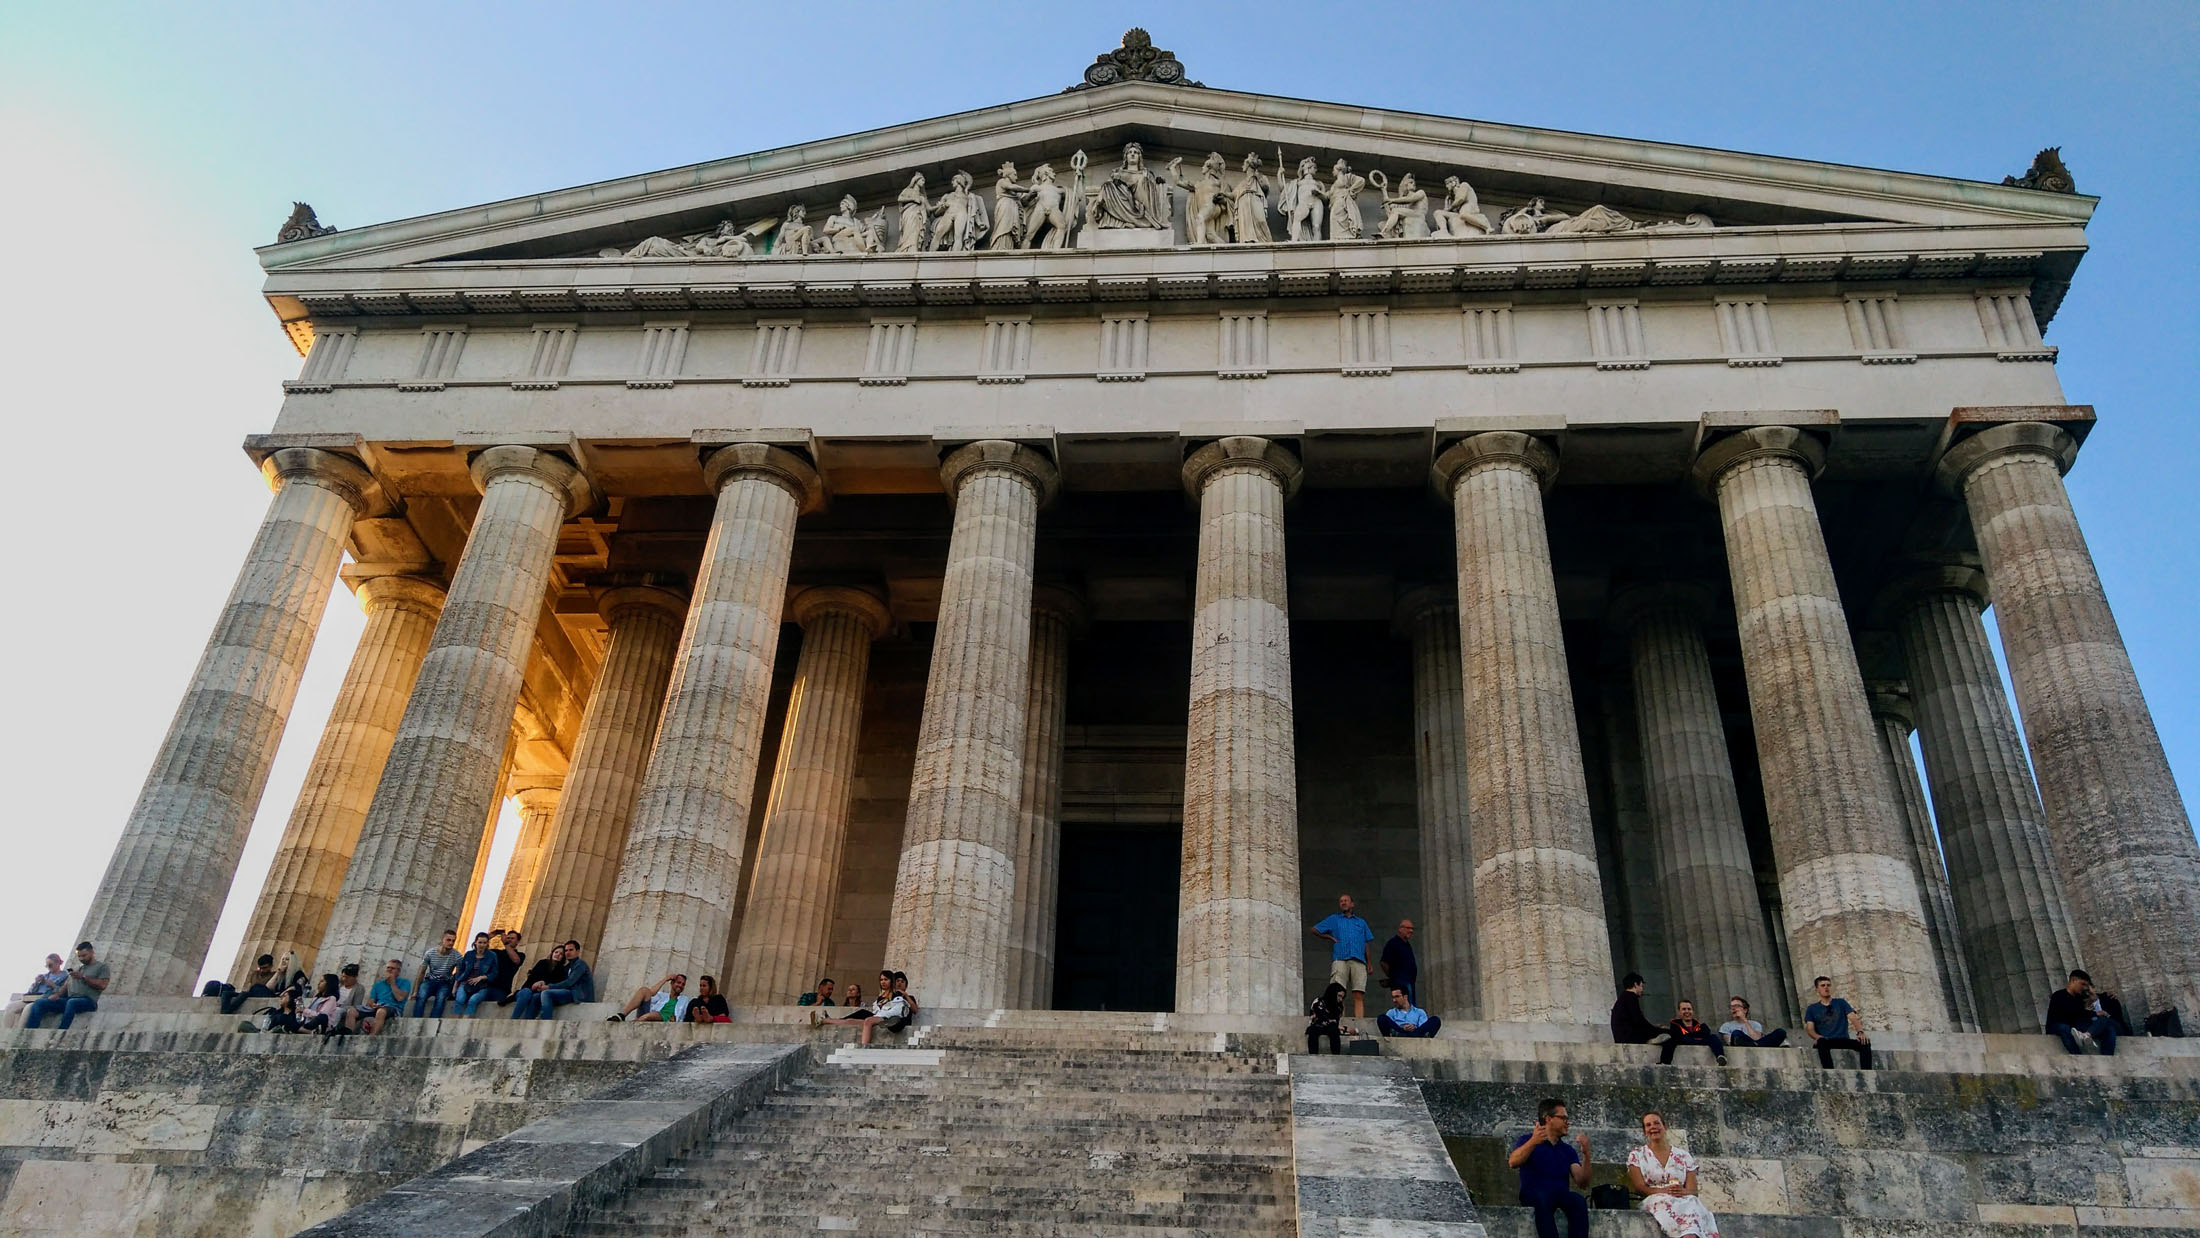 The Walhalla in Donaustauf is a hall of fame that honours laudable people in German history.